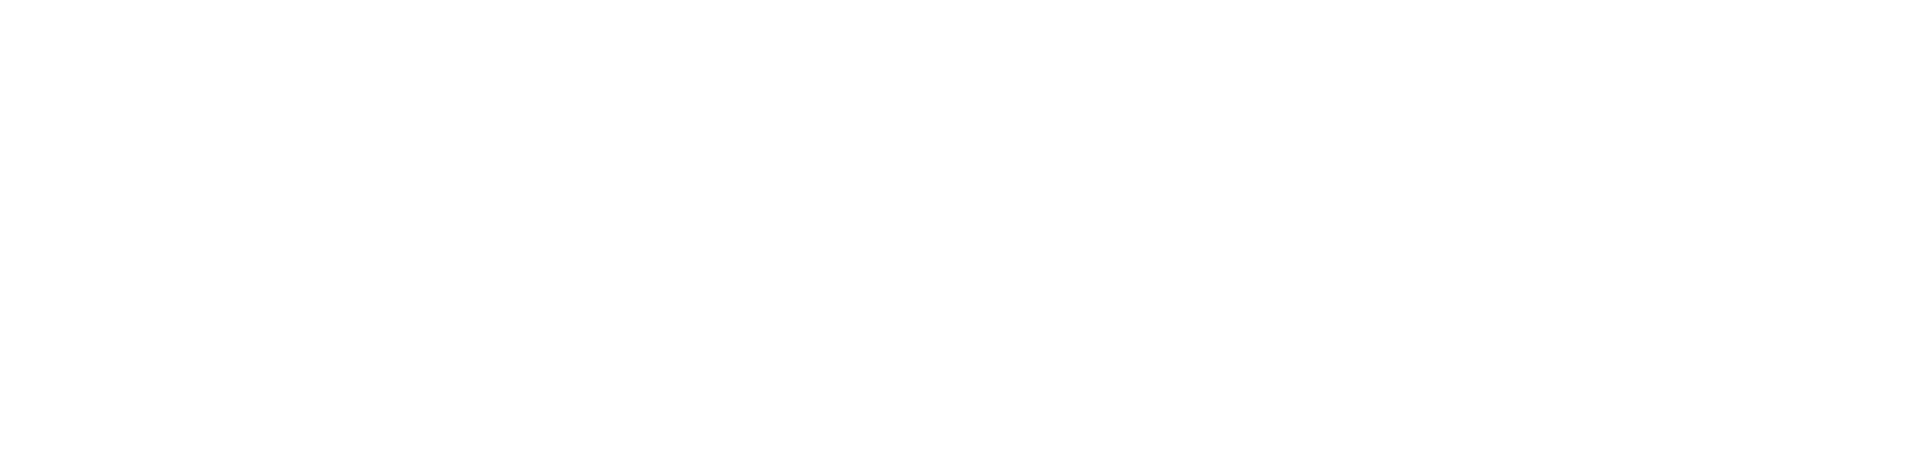 Law Offices of Rick DeHoyos